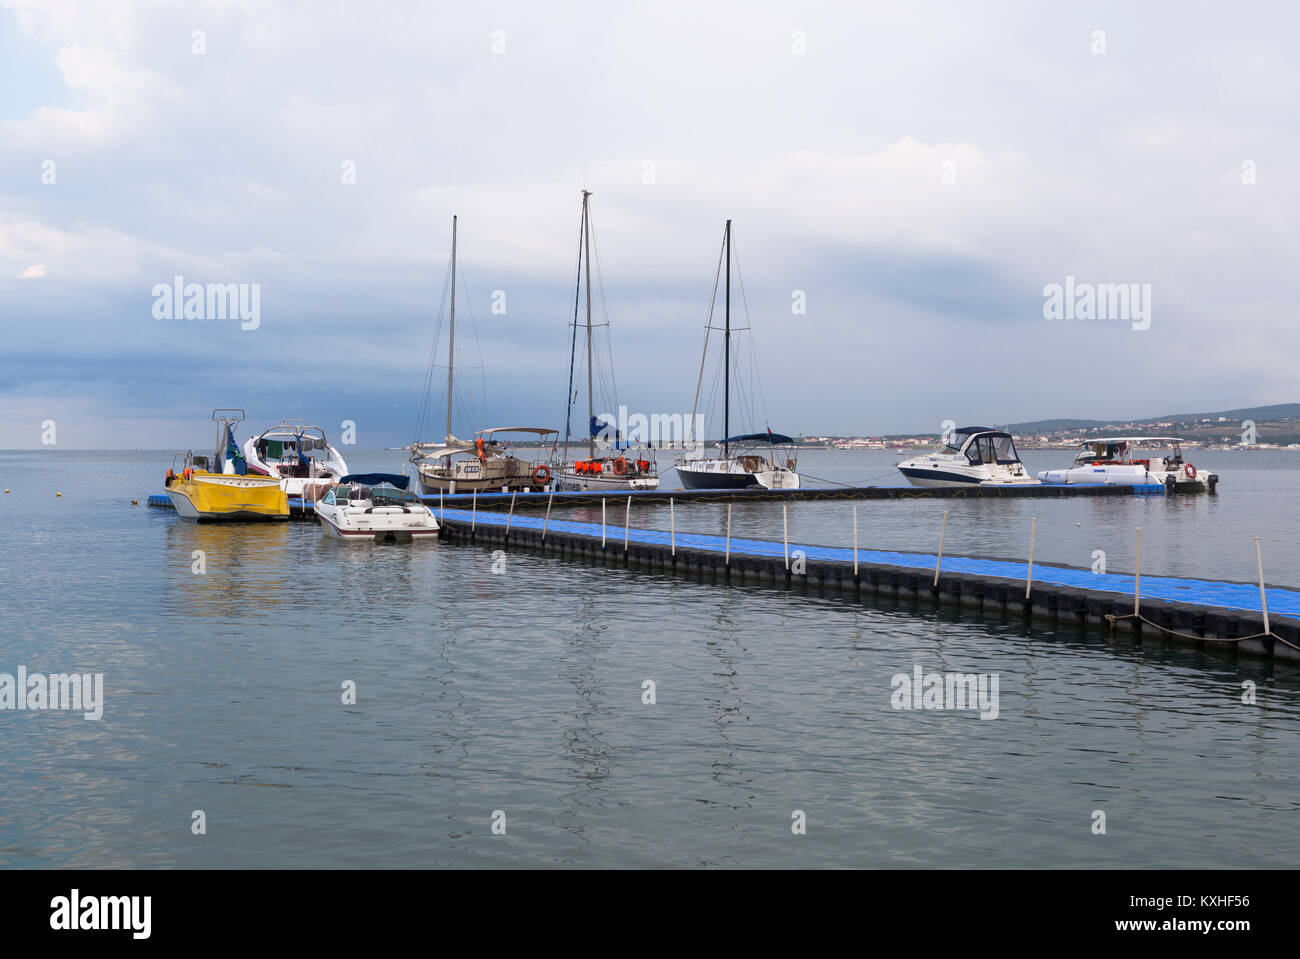 Gelendzhik, Krasnodar region, Russia - 16 July 2015: Boats and yachts at the floating pier in Gelendzhik Bay early - Stock Image